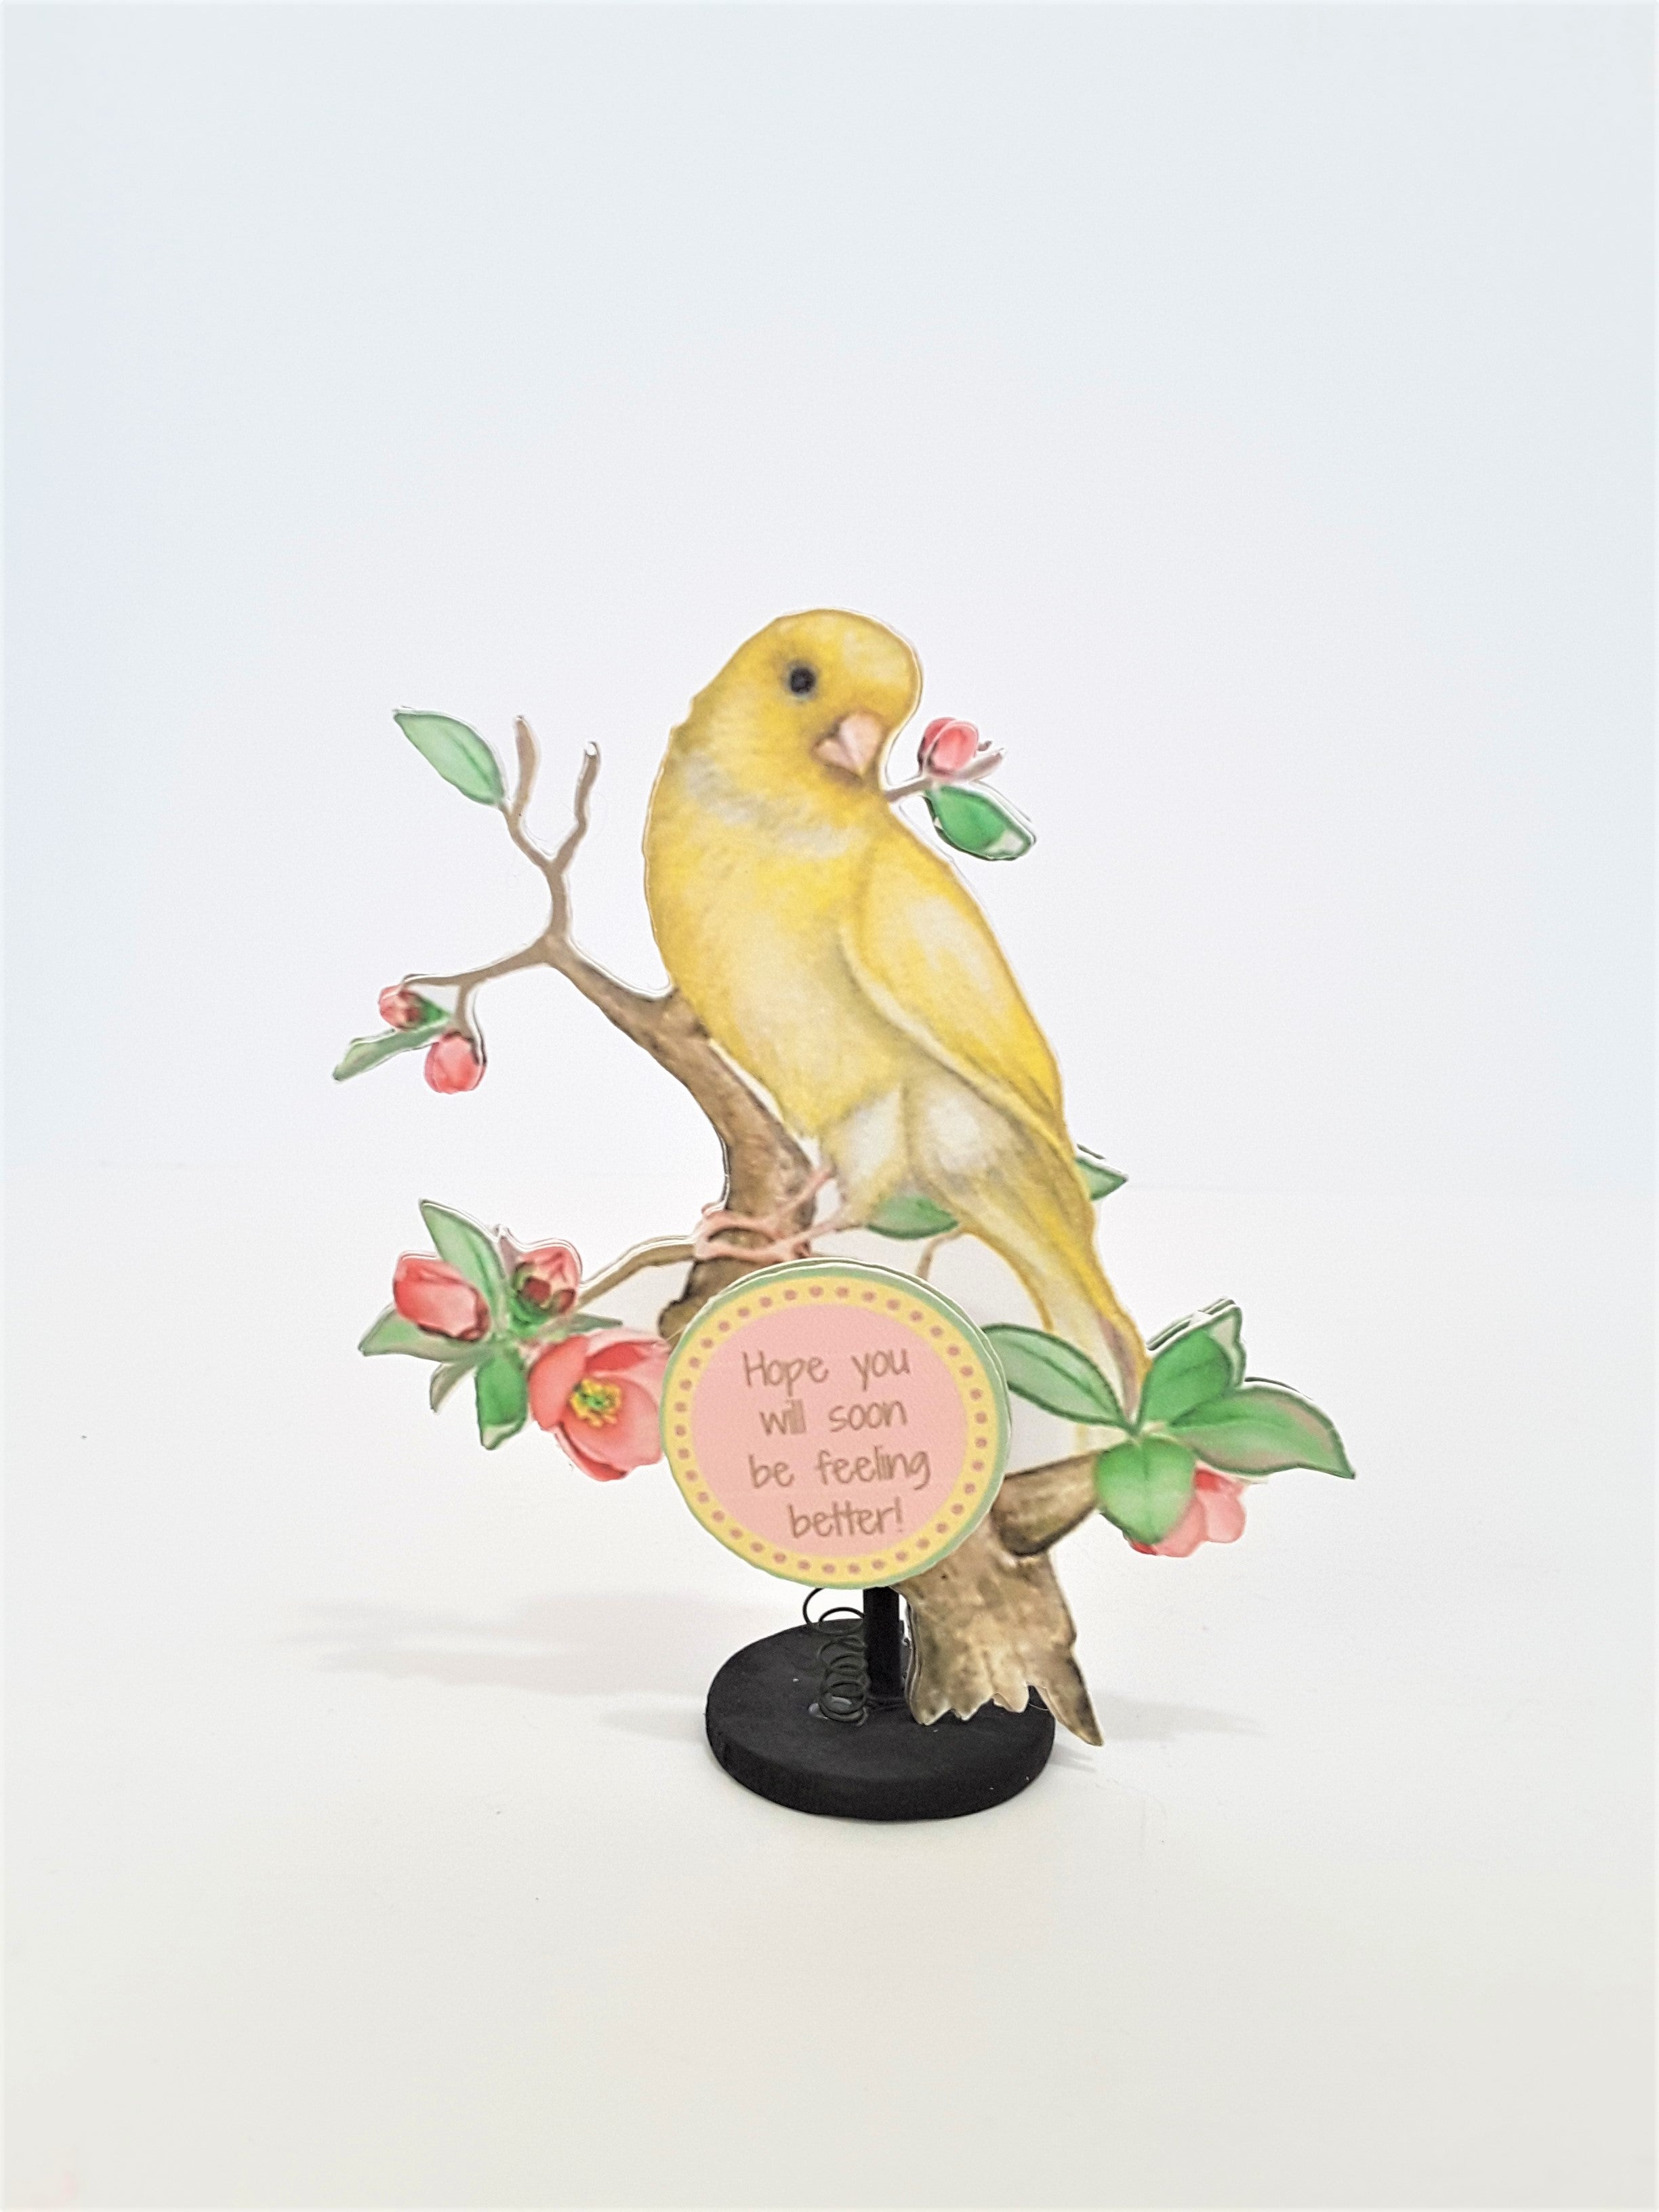 Yellow Canary on Tree Branch 3D All-Occasion Card - TheLastWordBish.com